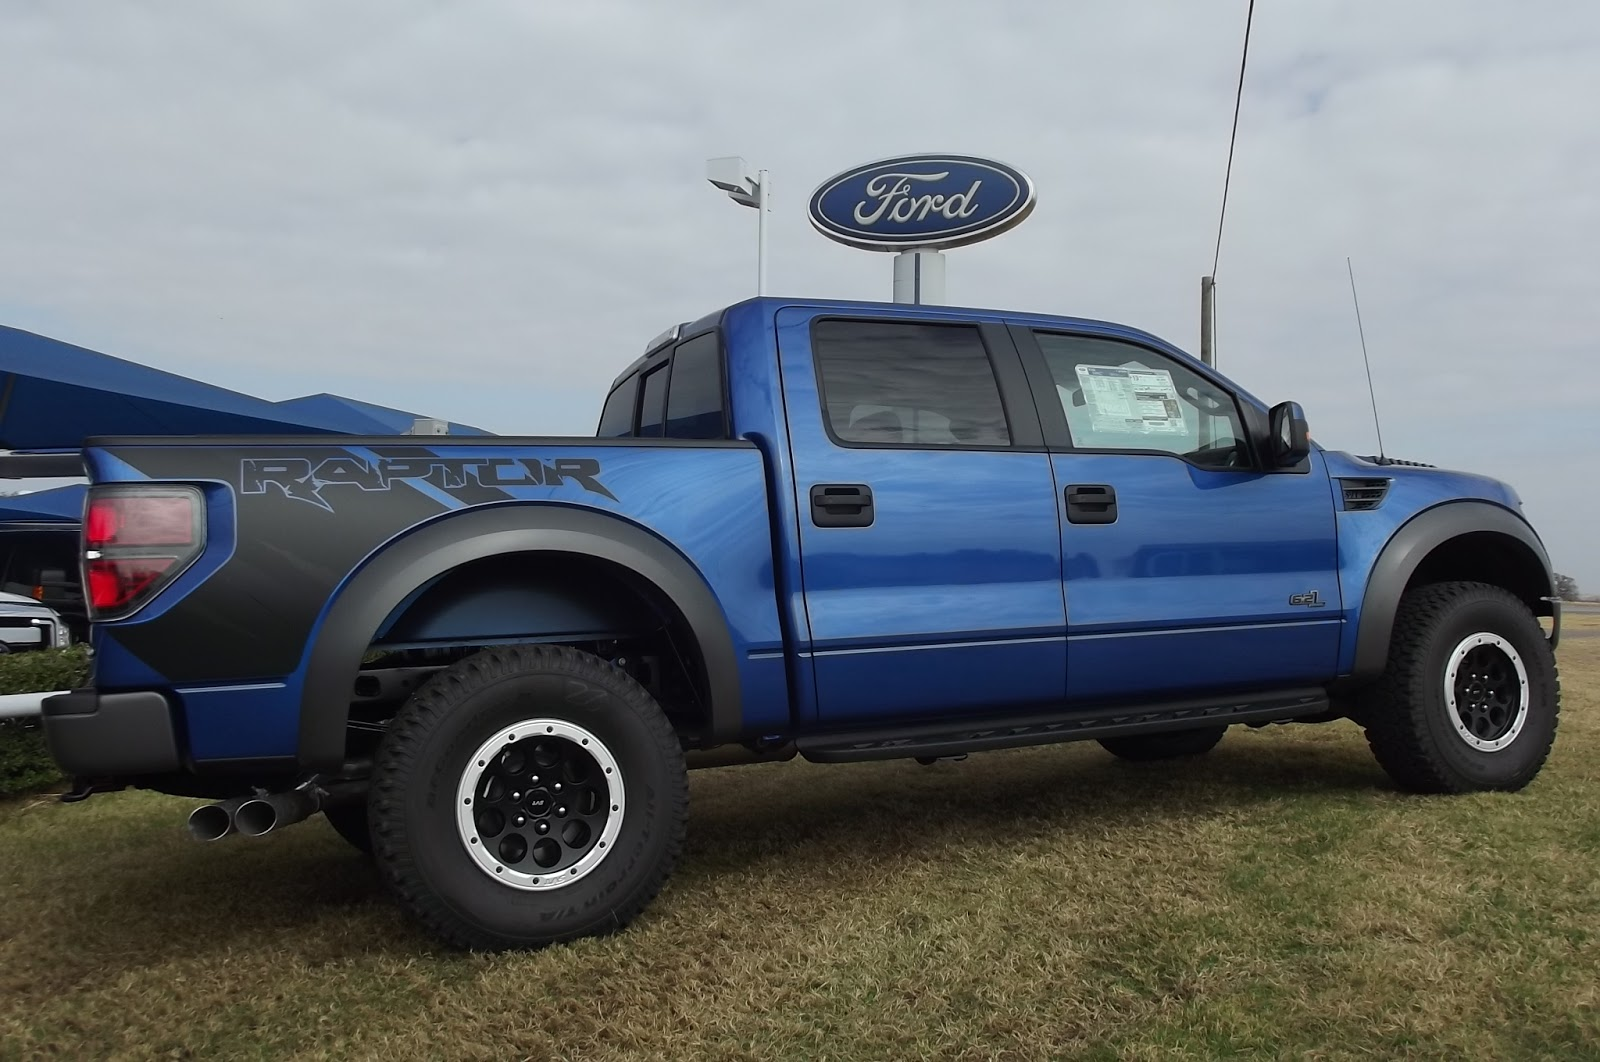 Jeep Dealership Dfw >> Official Off Road 4x4 New 2013 Ford BLUE FLAME Raptor SVT 6.2L contact Troy Young 817-243-9840 ...